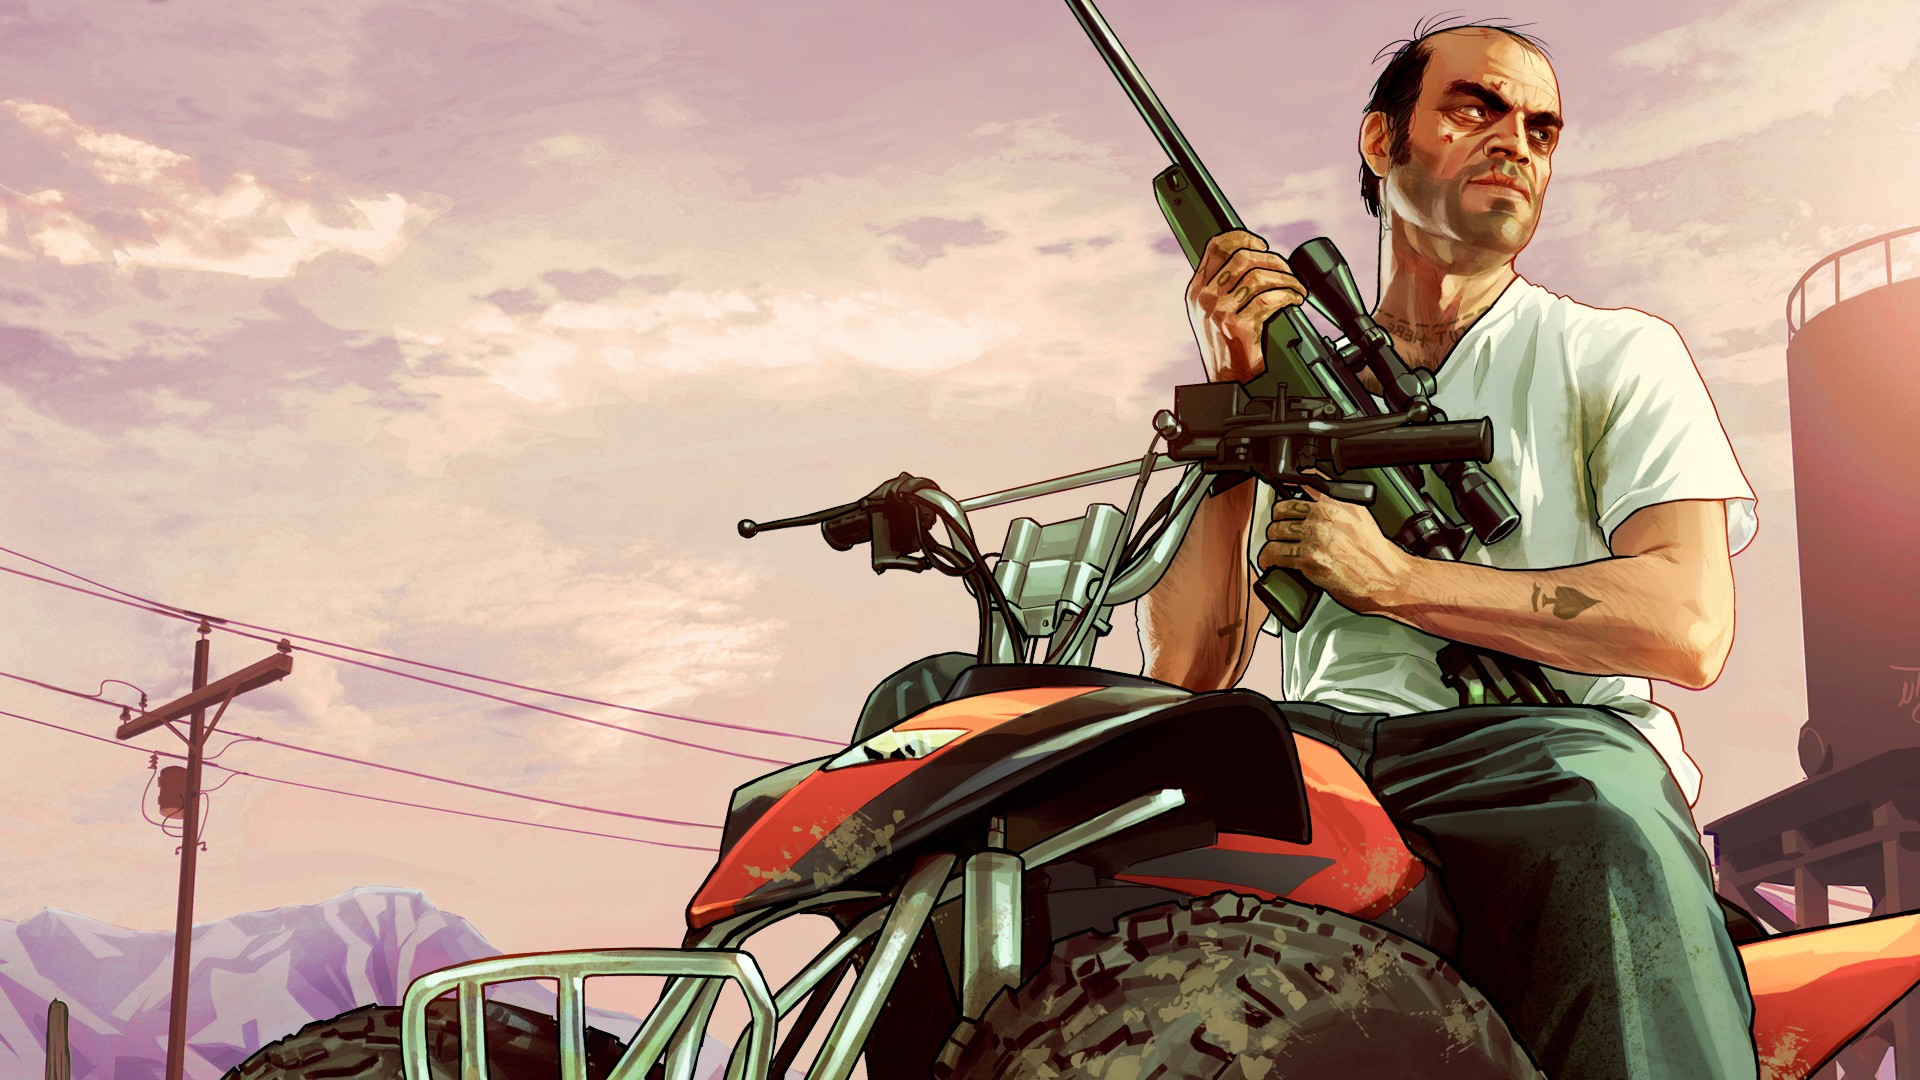 Grand Theft Auto V Full HD Wallpaper and Background Image ...